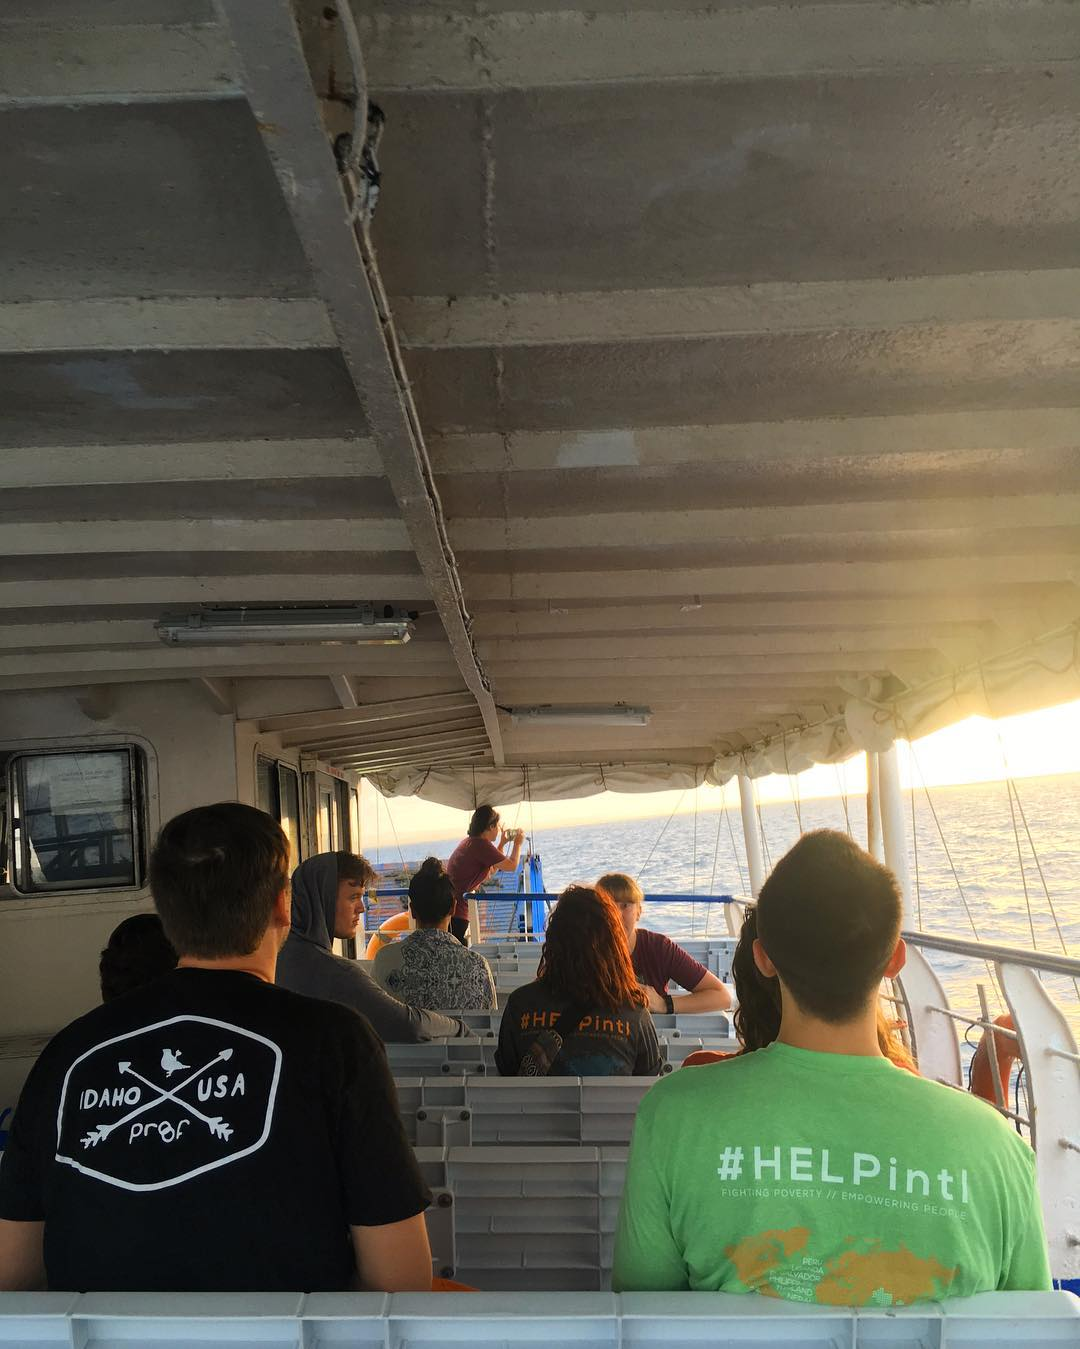 Teamwork makes the dream work. It's 6:40am over here and we're watching the sunrise on our ferry to the next health screening. Over 60 people were scheduled for surgeries yesterday alone - make sure to follow #ThePhilippinesProject by adding us on...